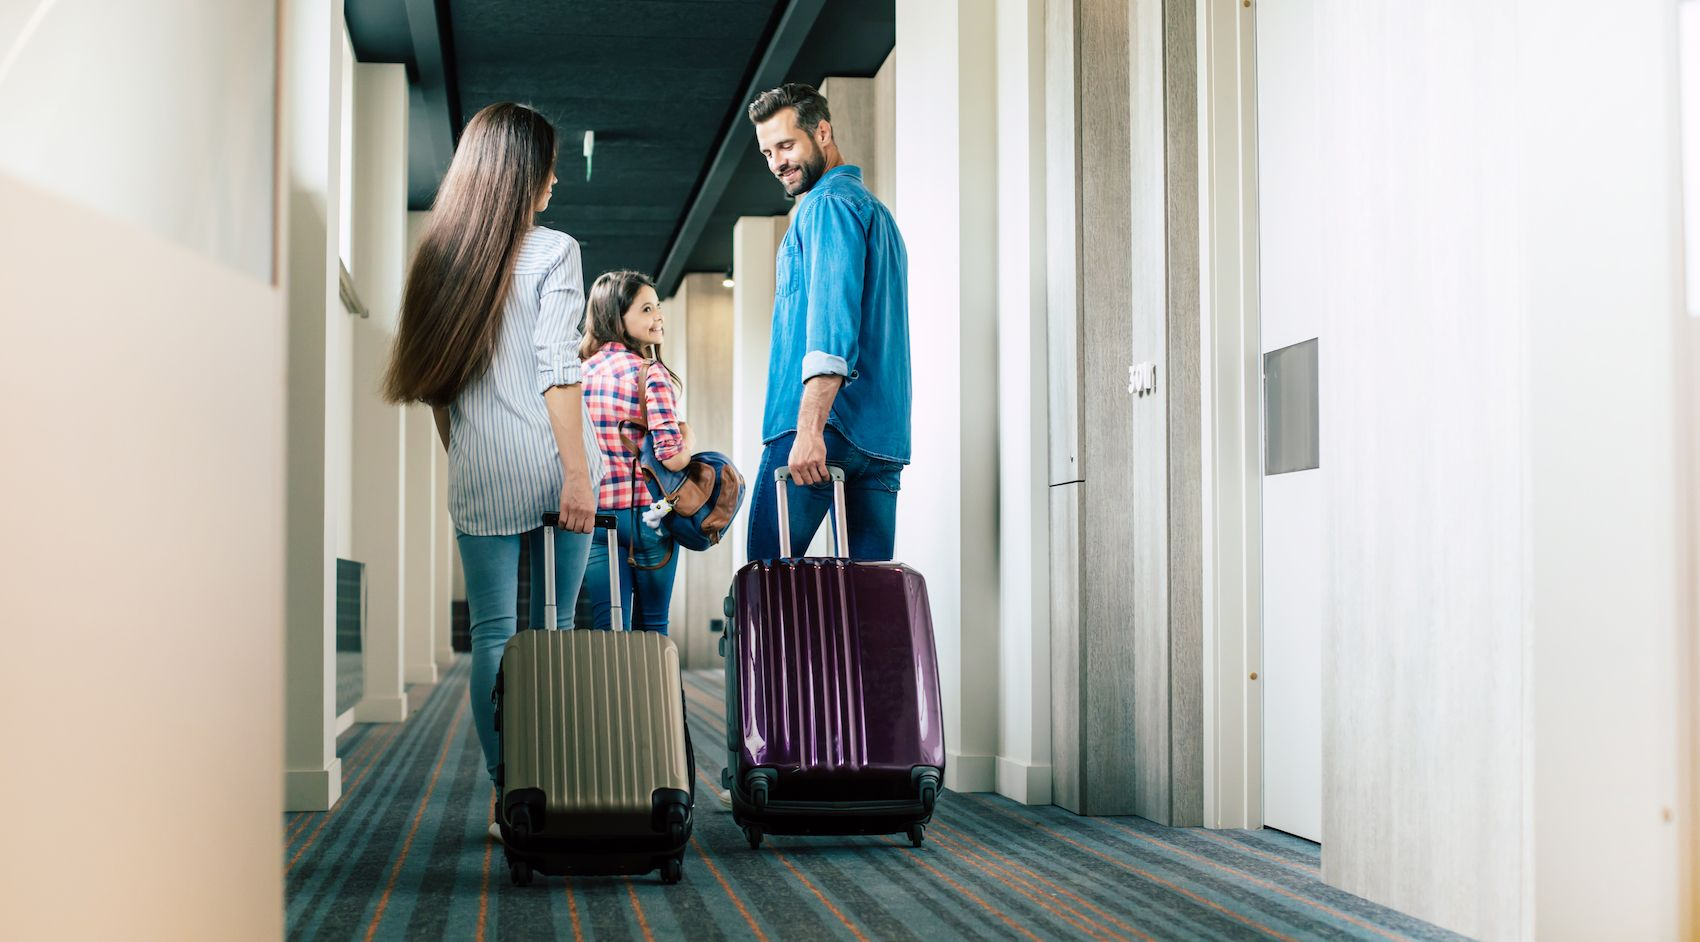 happy-family-carrying-suitcases-together.jpg